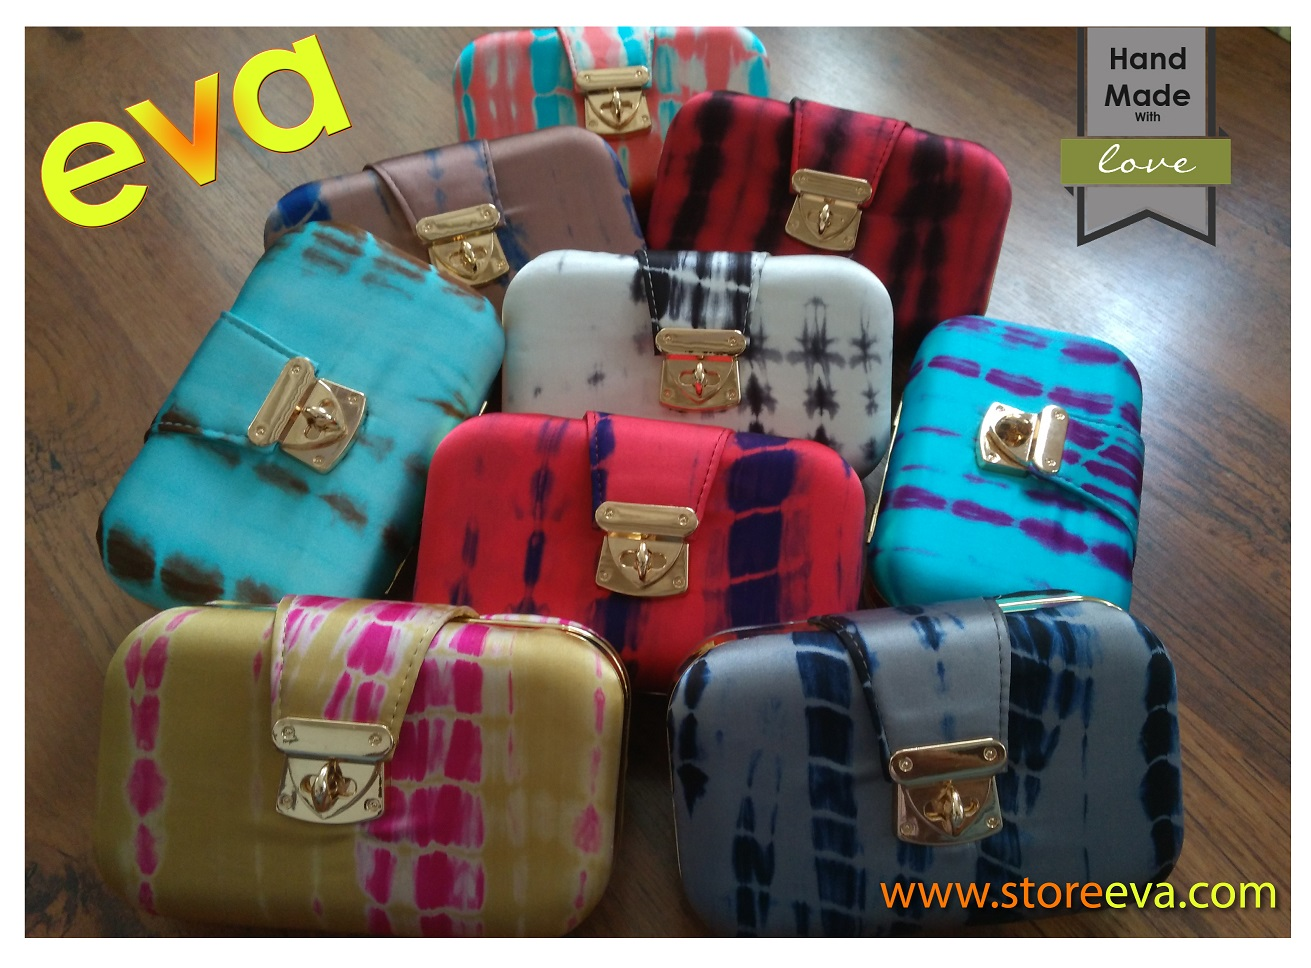 Store Eva Tie-and-Dye Clutches